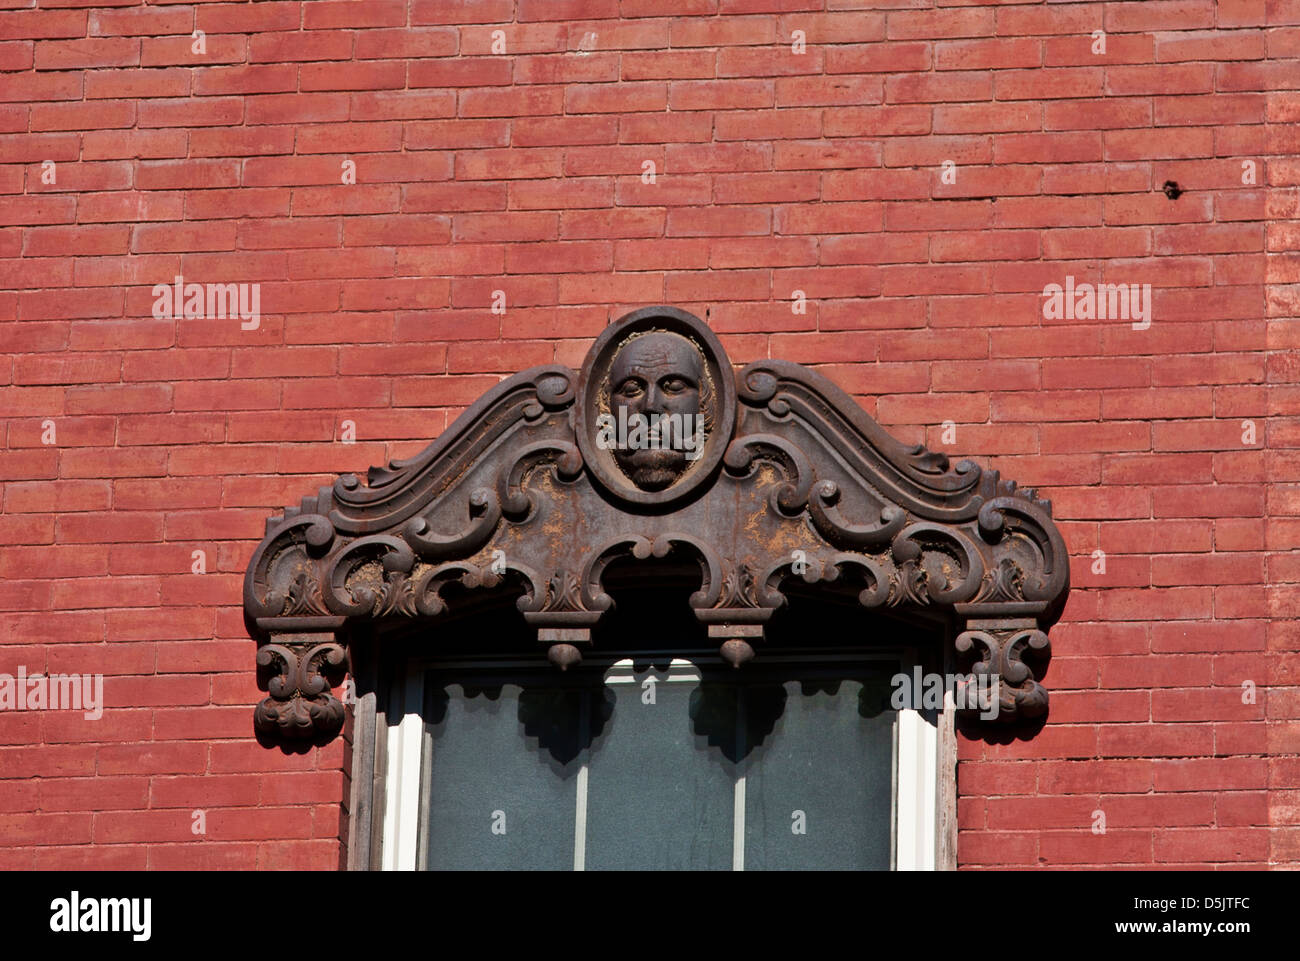 Rockland Maine, Main Street. A cast iron lintel on the face of a late 19th century commercial building. - Stock Image